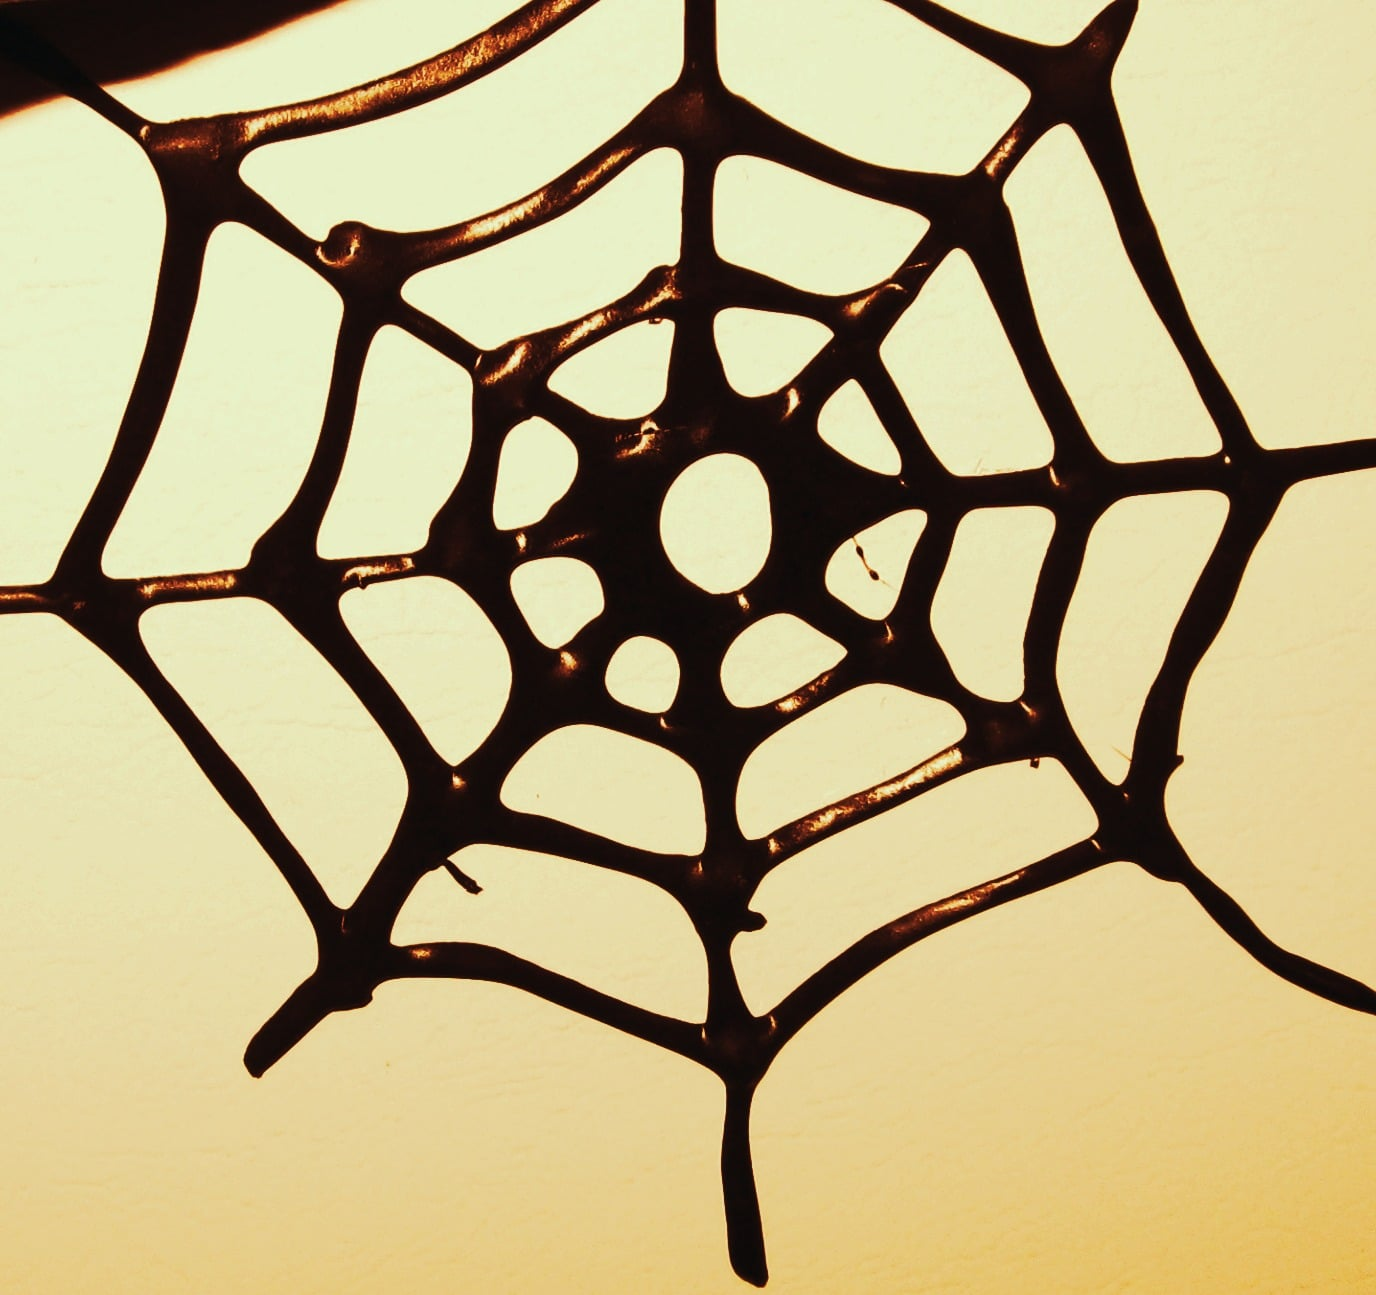 edible-spider-web